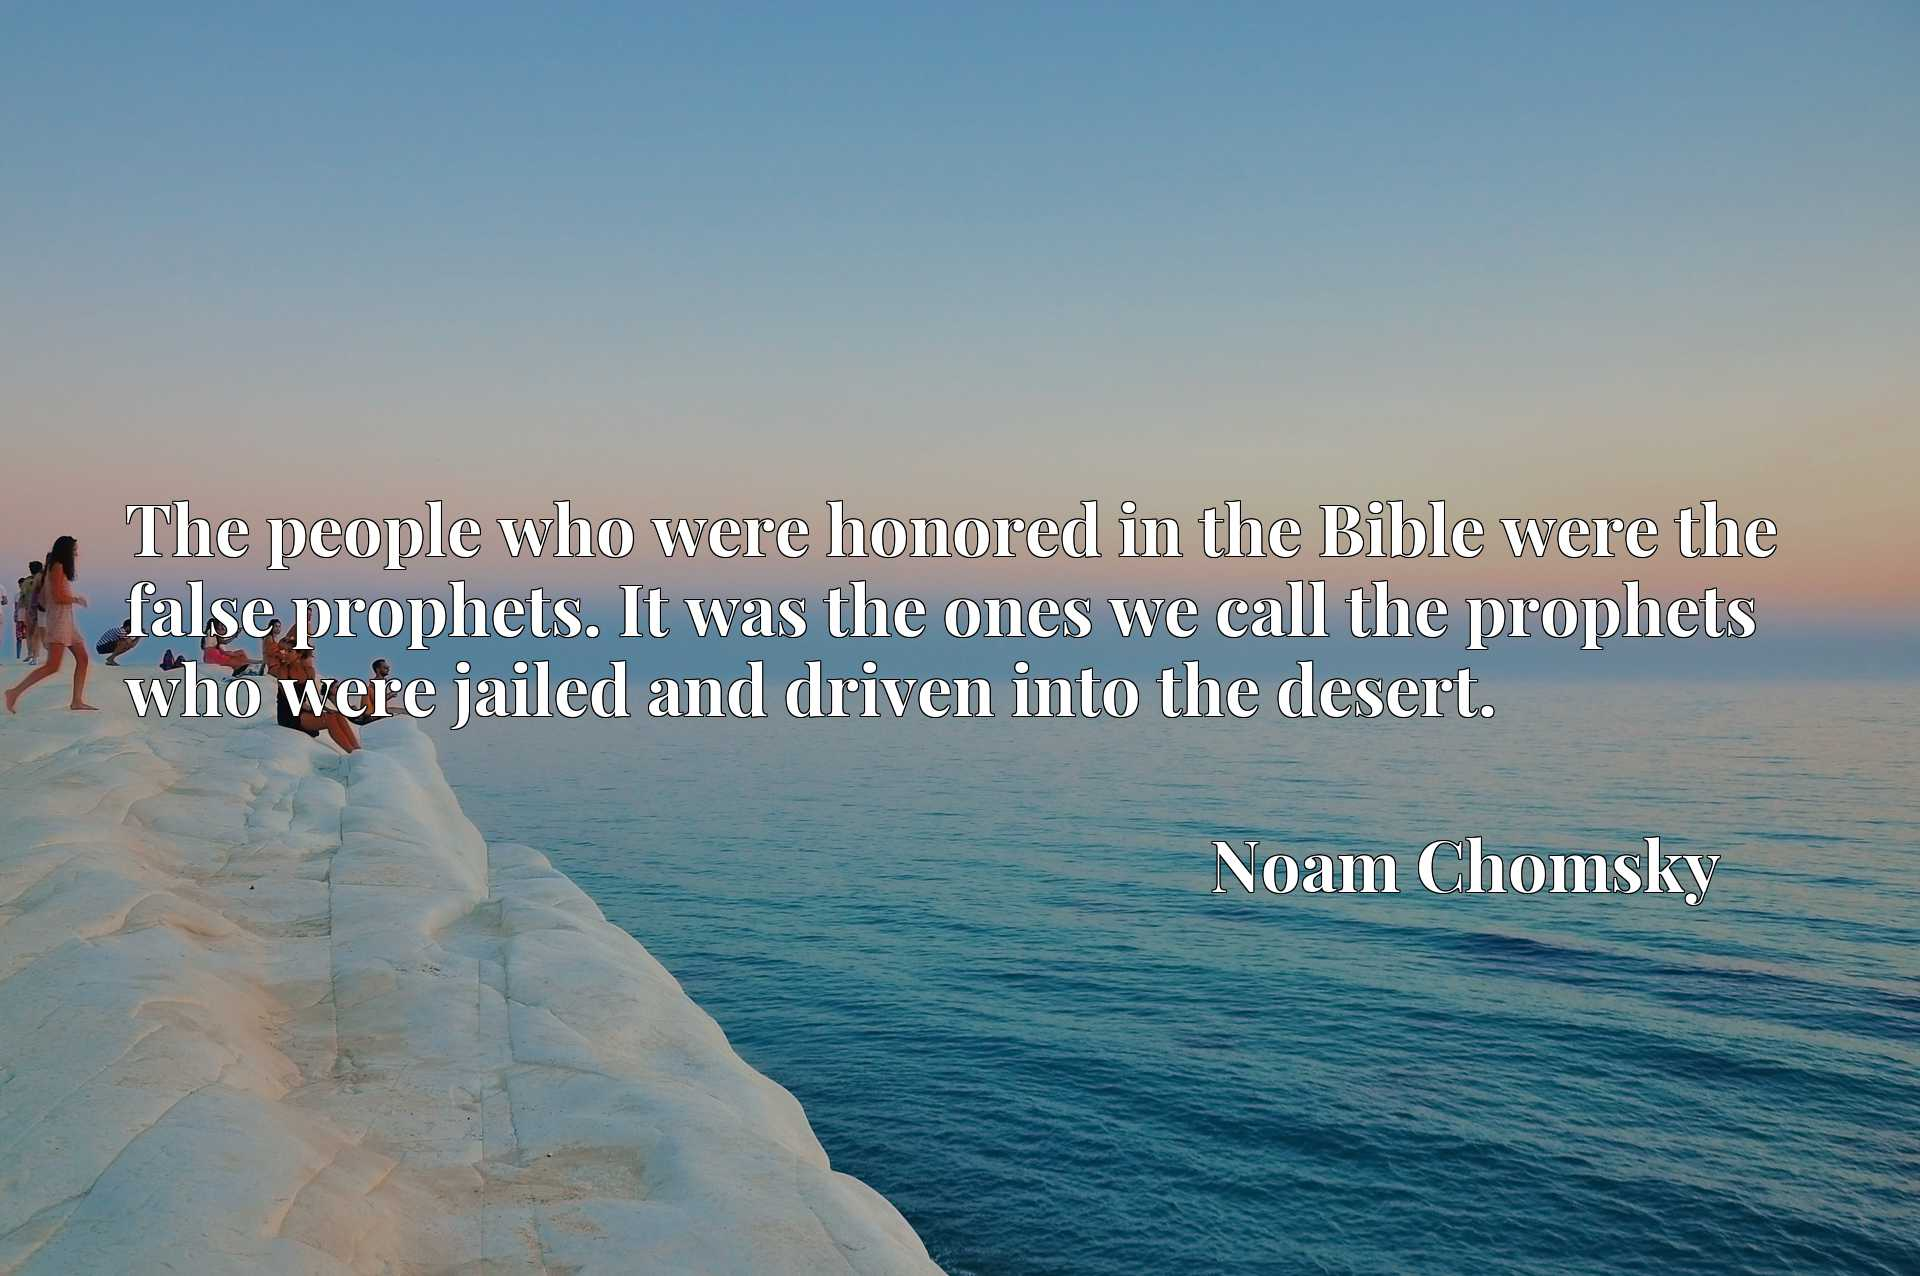 The people who were honored in the Bible were the false prophets. It was the ones we call the prophets who were jailed and driven into the desert.